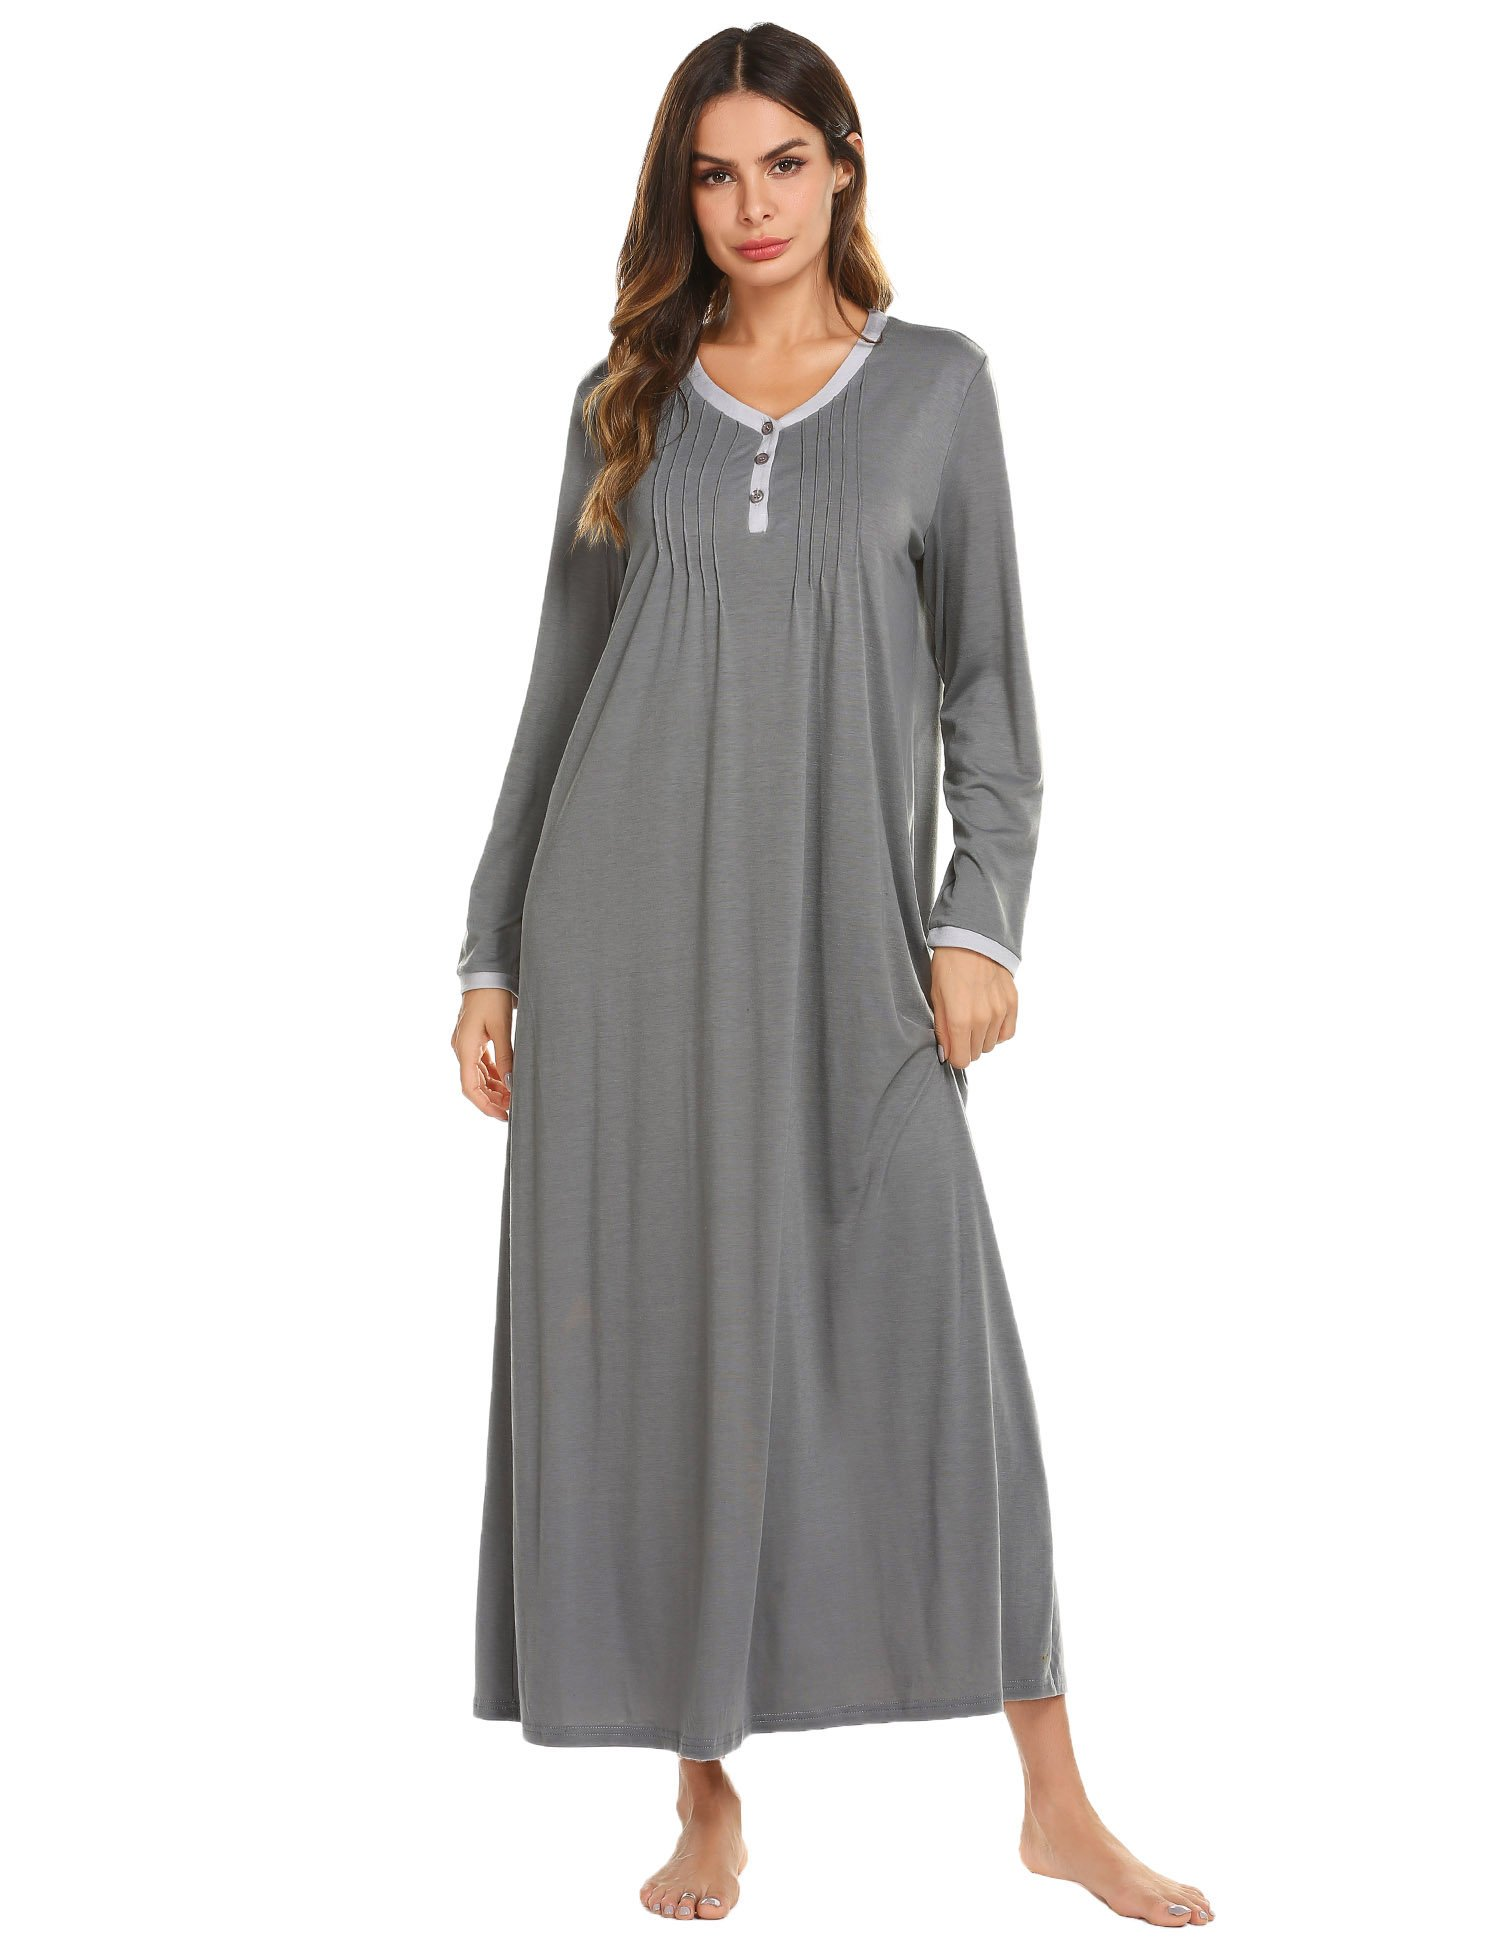 Ekouaer Womens Nightshirt Long Sleeve Nightgown Casual Sleepwear Full Length Sleep Dress